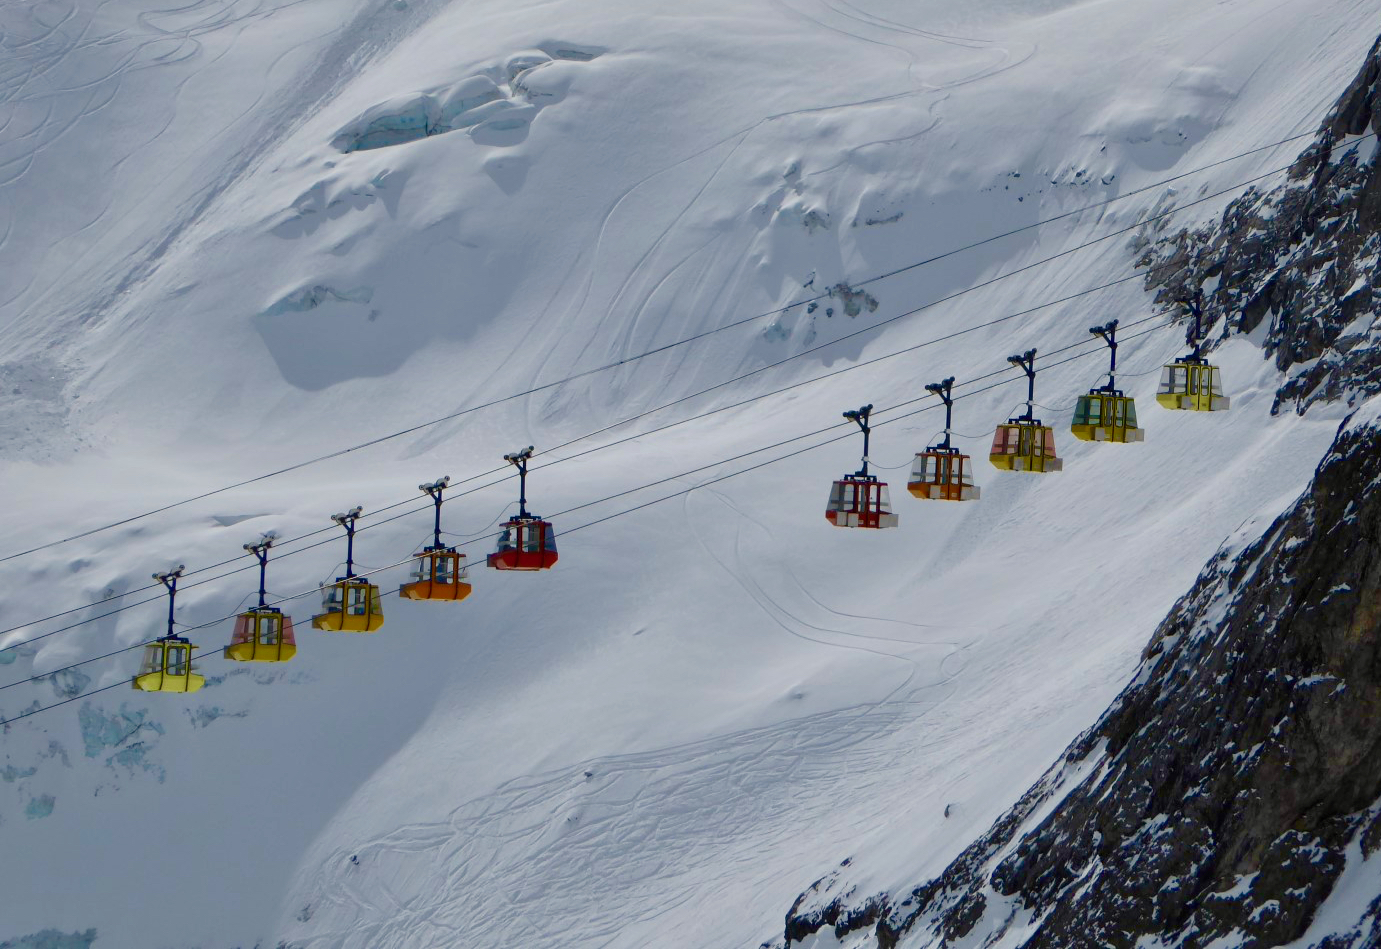 La Grave The History Of The Wildest Ski Area On The Planet